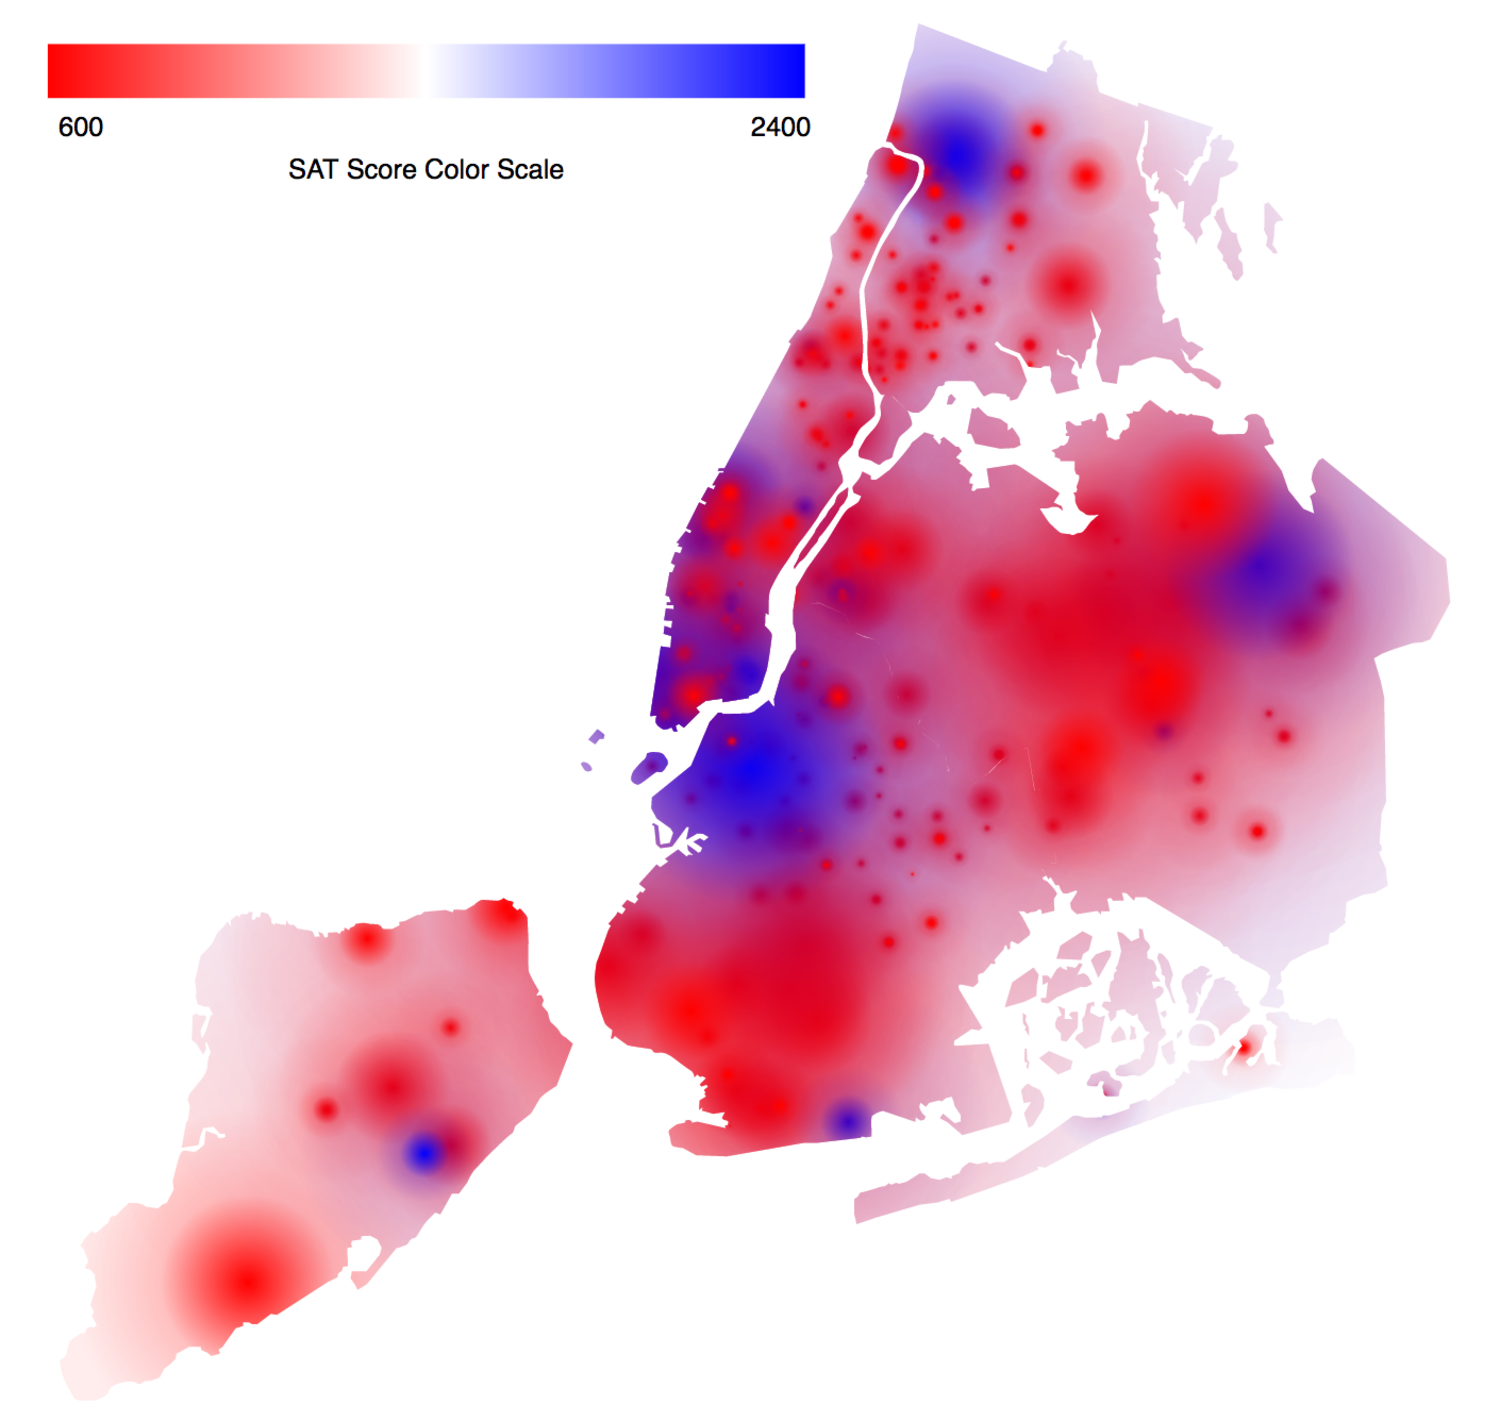 Heat Map Shows Average Sat Scores Across New York City Neighborhoods